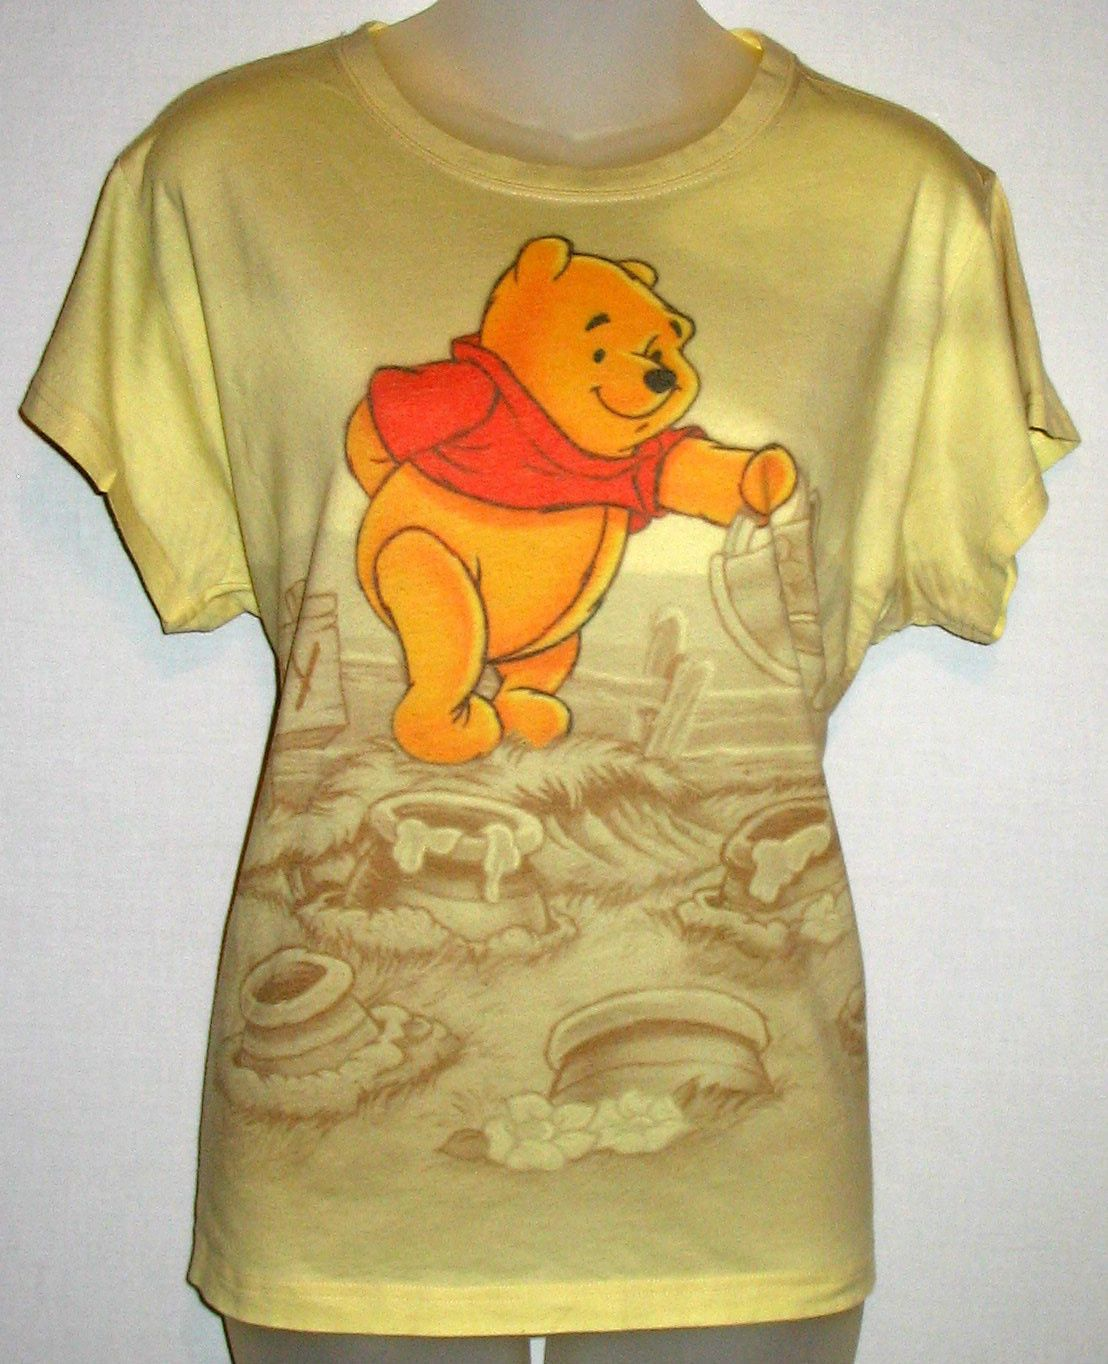 Disney Women s Yellow T-Shirt Top W Winnie The Pooh - Size X-Large ... 59a87076e